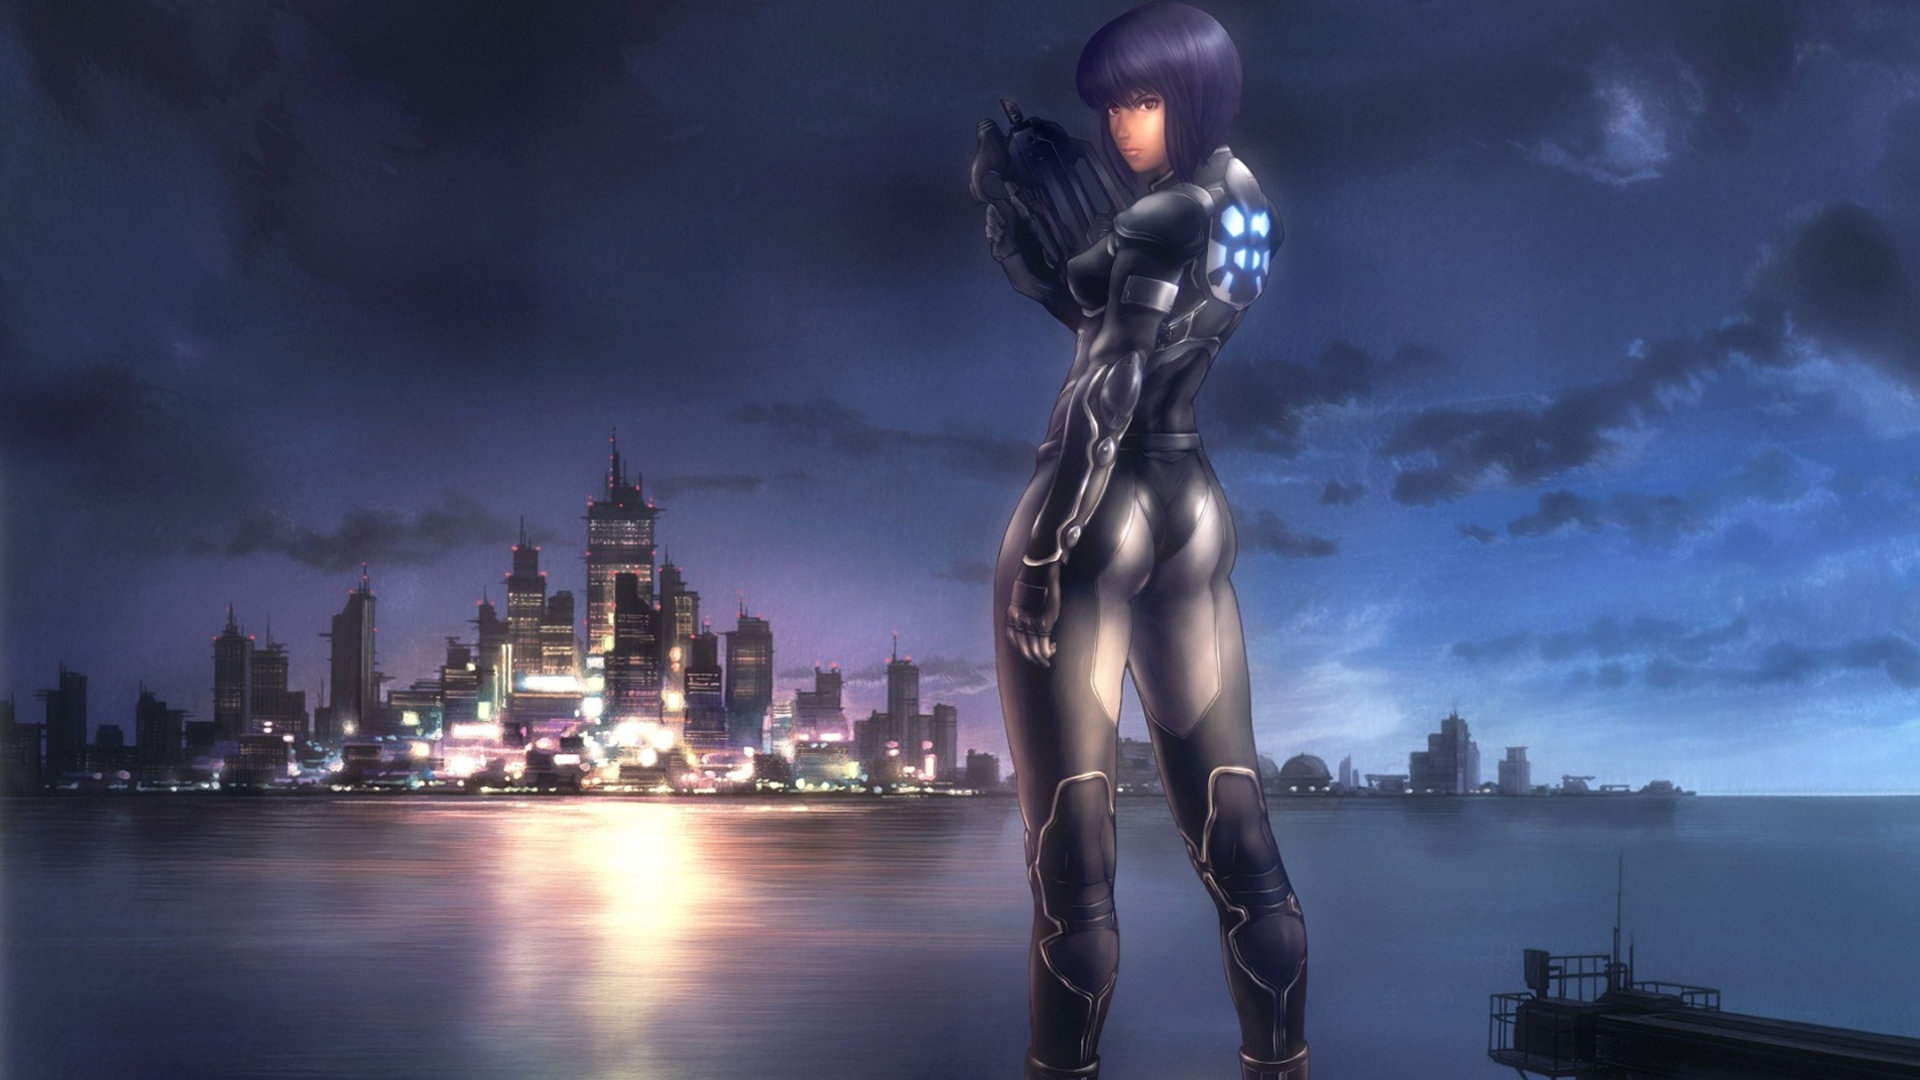 Awesome Ghost In The Shell free wallpaper ID:441992 for full hd 1920x1080 computer